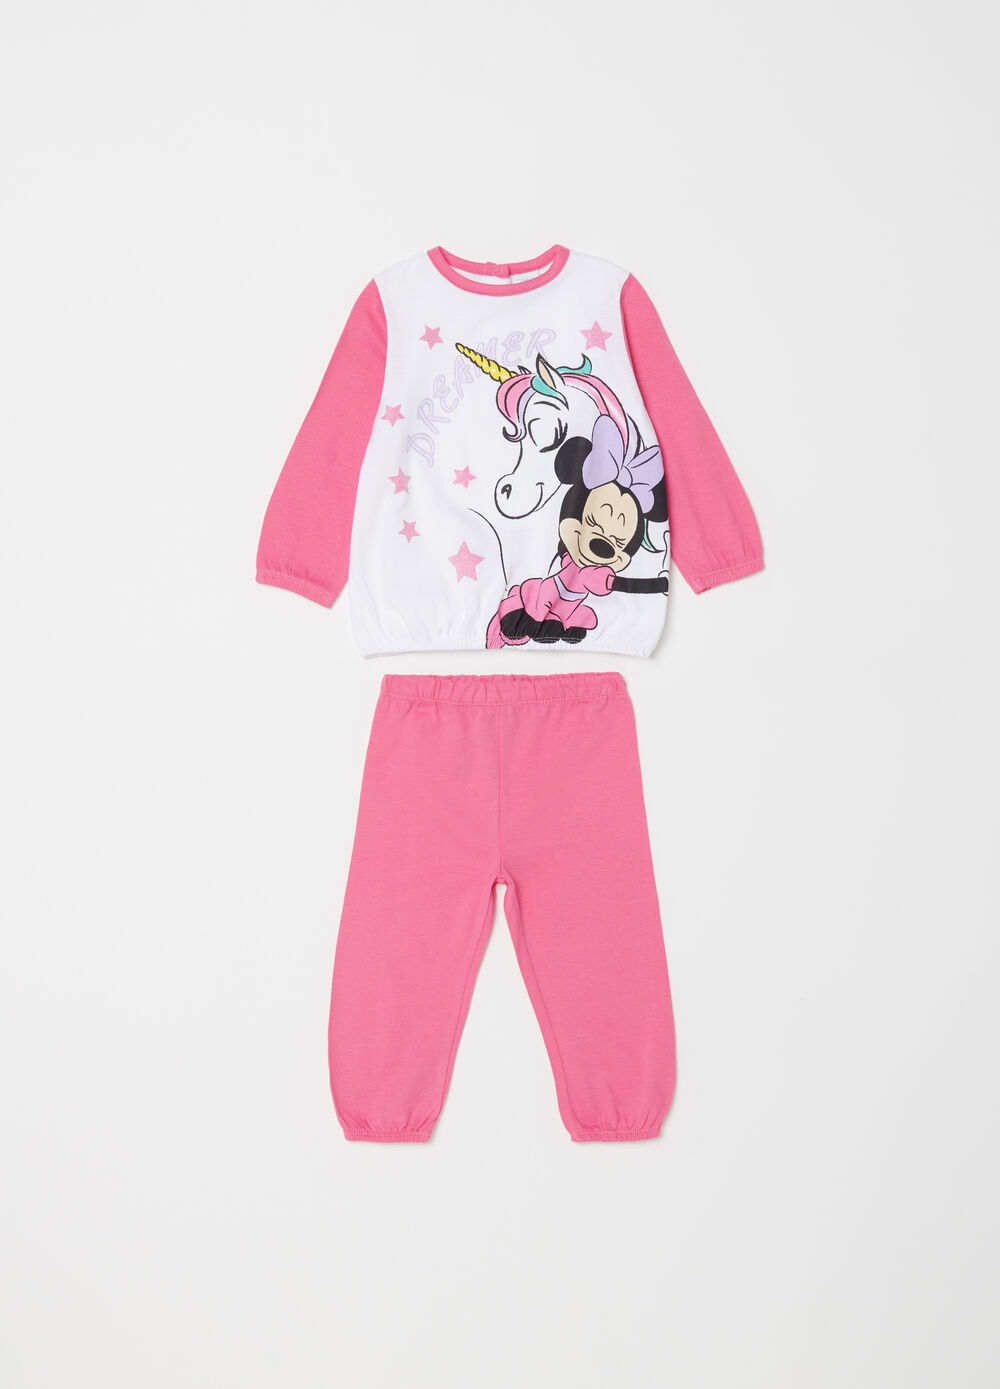 Full-length pyjamas with Minnie Mouse and unicorn print